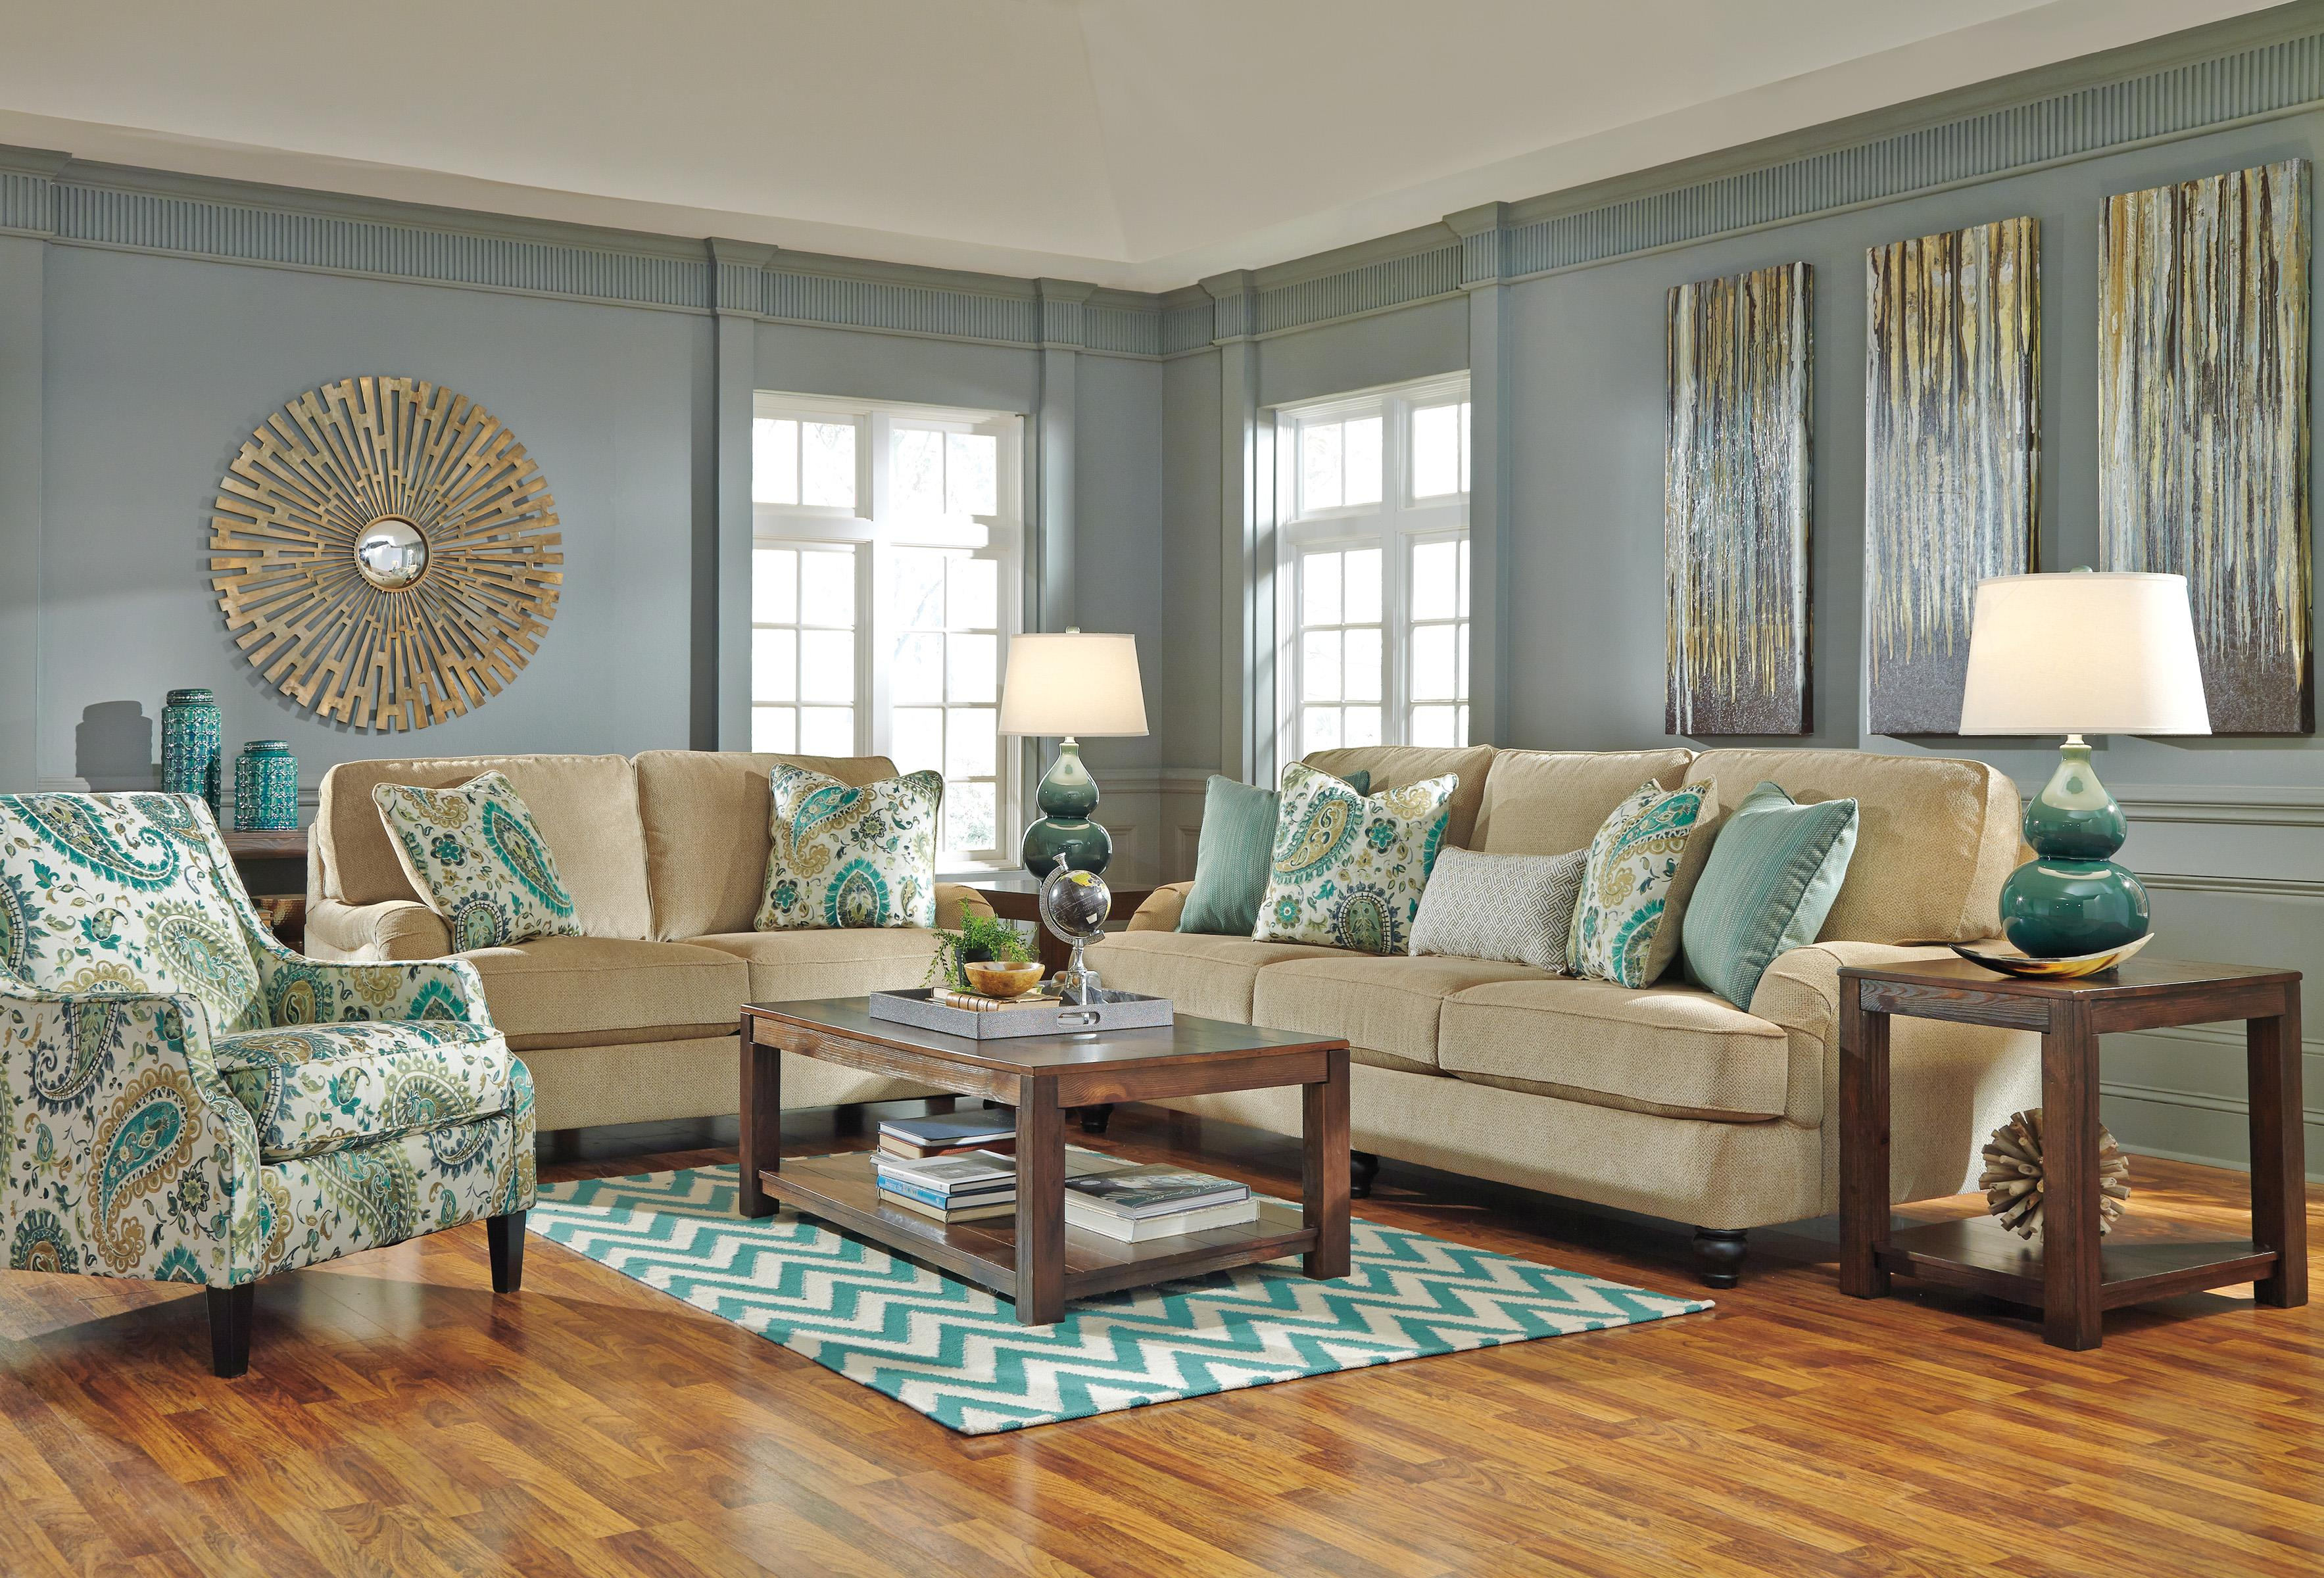 Ashley/Benchcraft Lochian Stationary Living Room Group - Item Number: 58100 Living Room Group 3